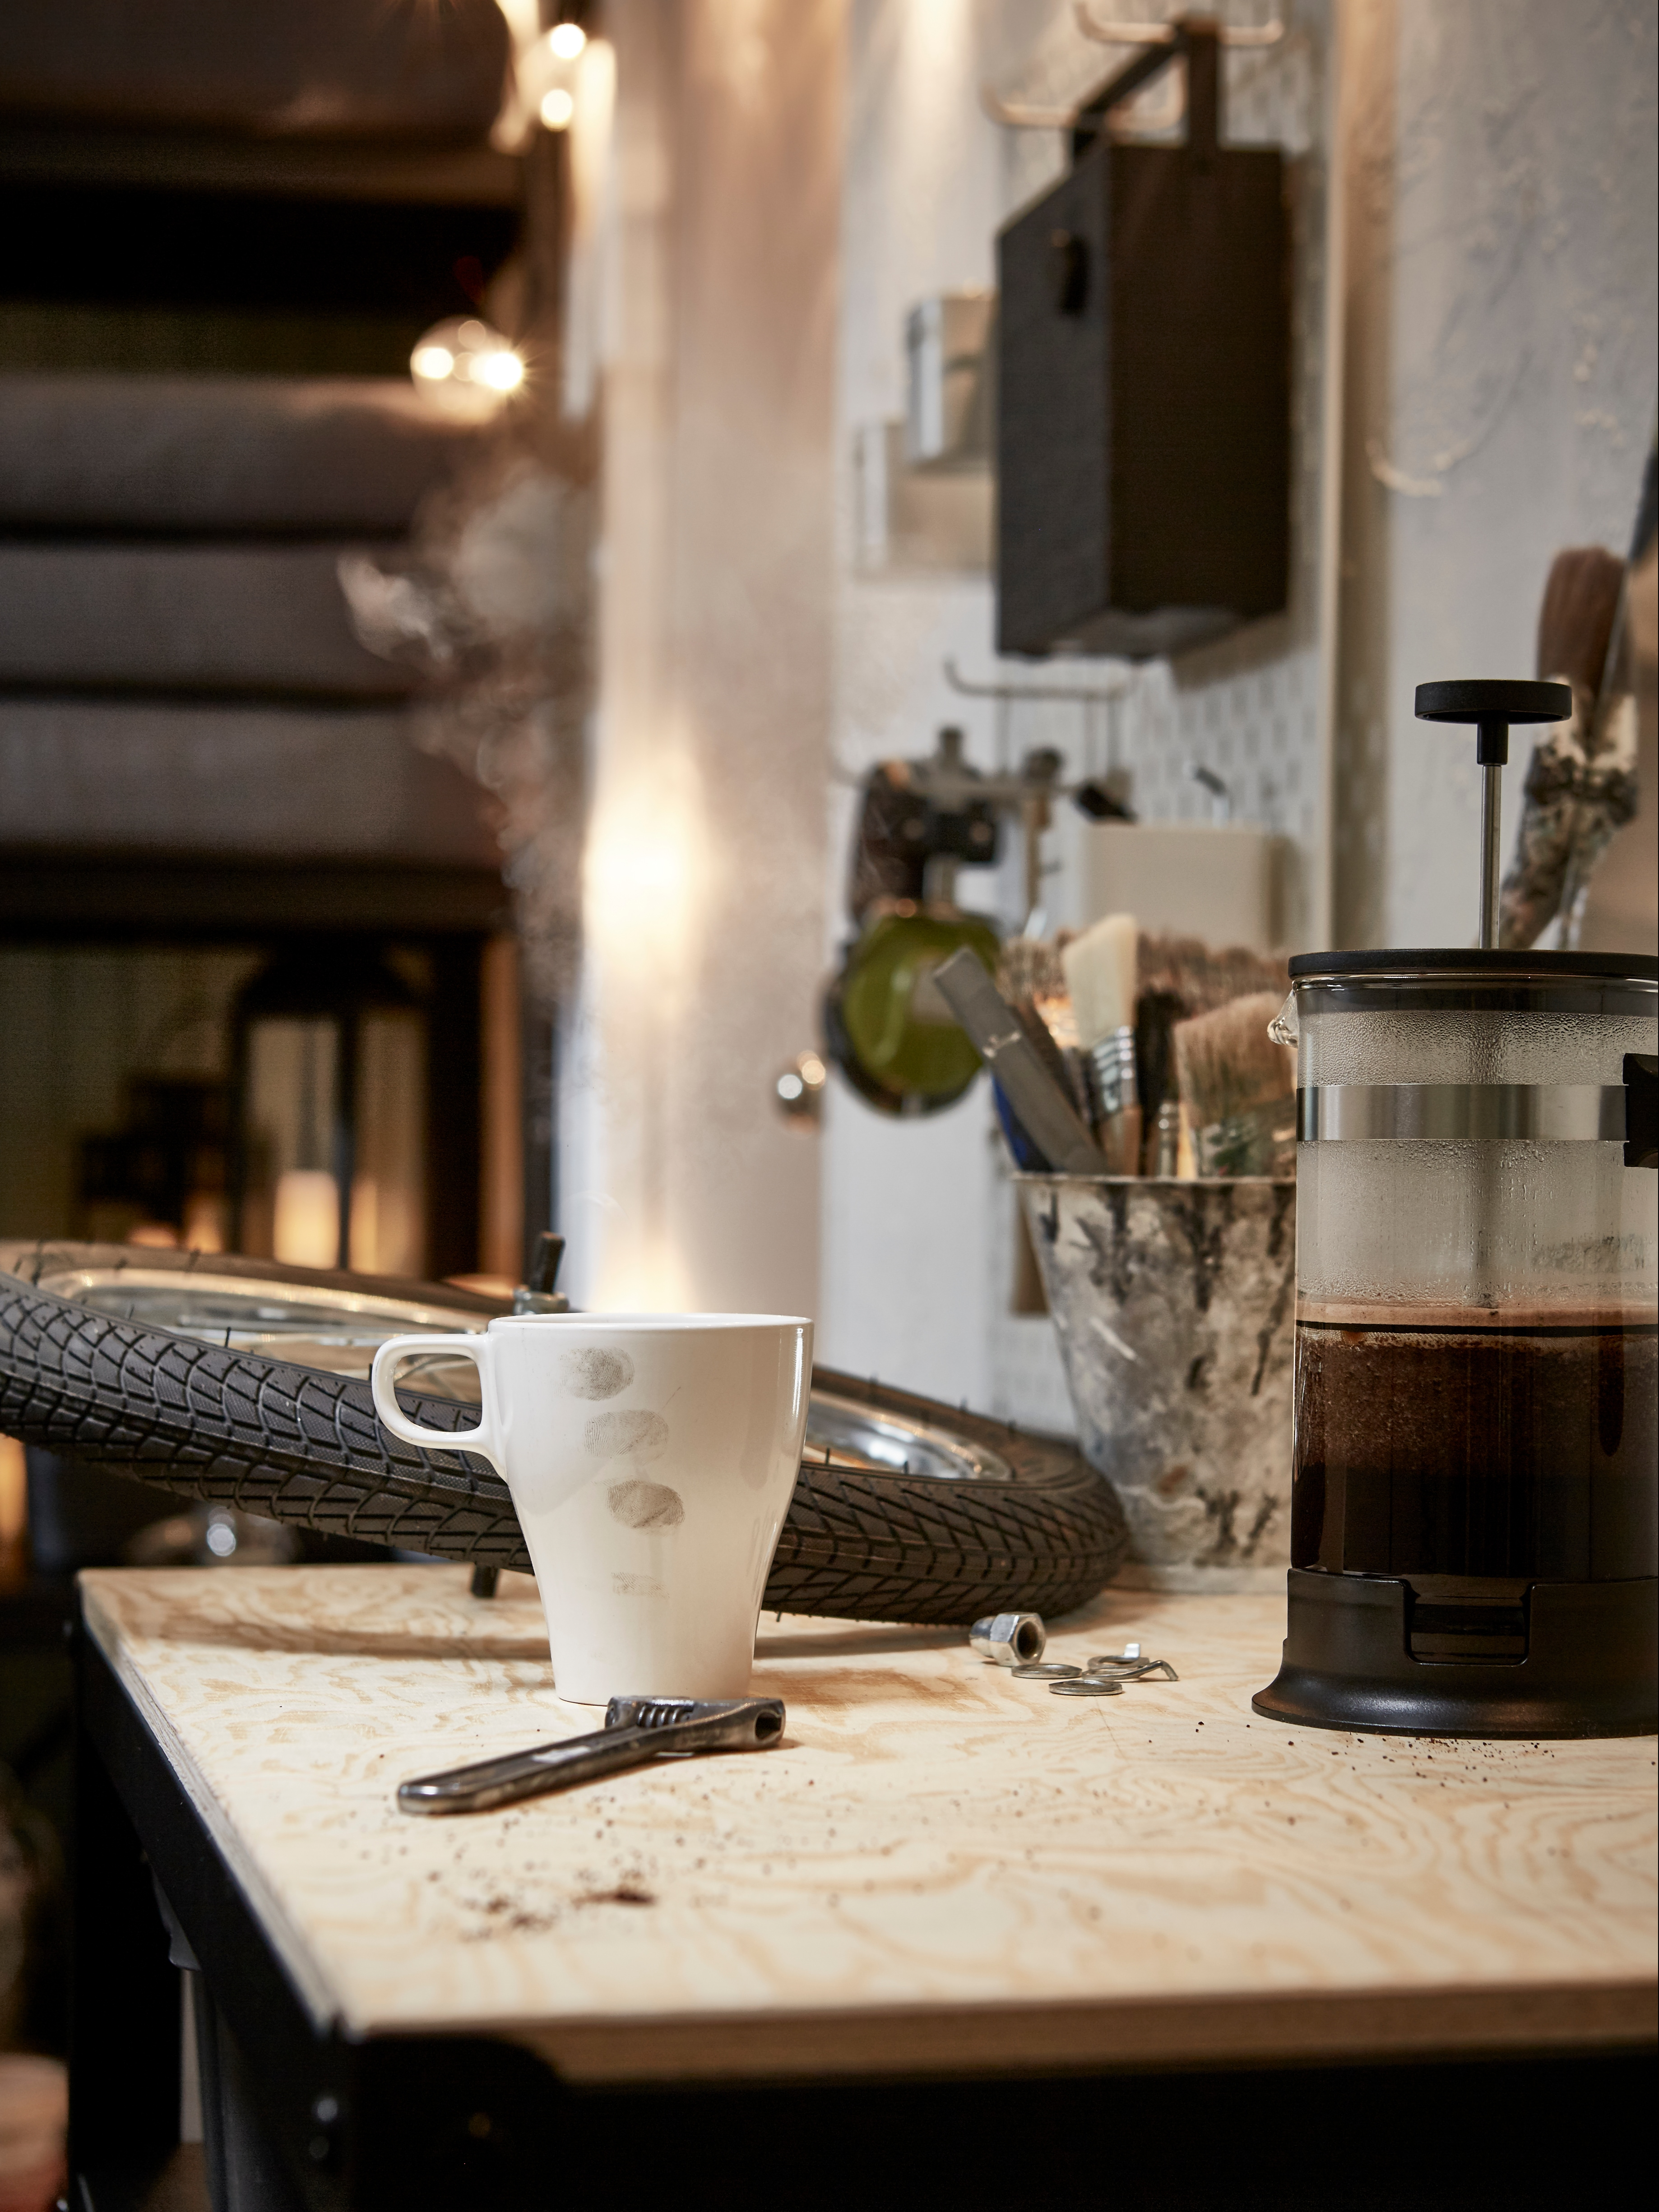 A worktop in a garage room that has a bike wheel, a wrench, a white FÄRGRIK stoneware mug and a steamy, glass coffee maker.